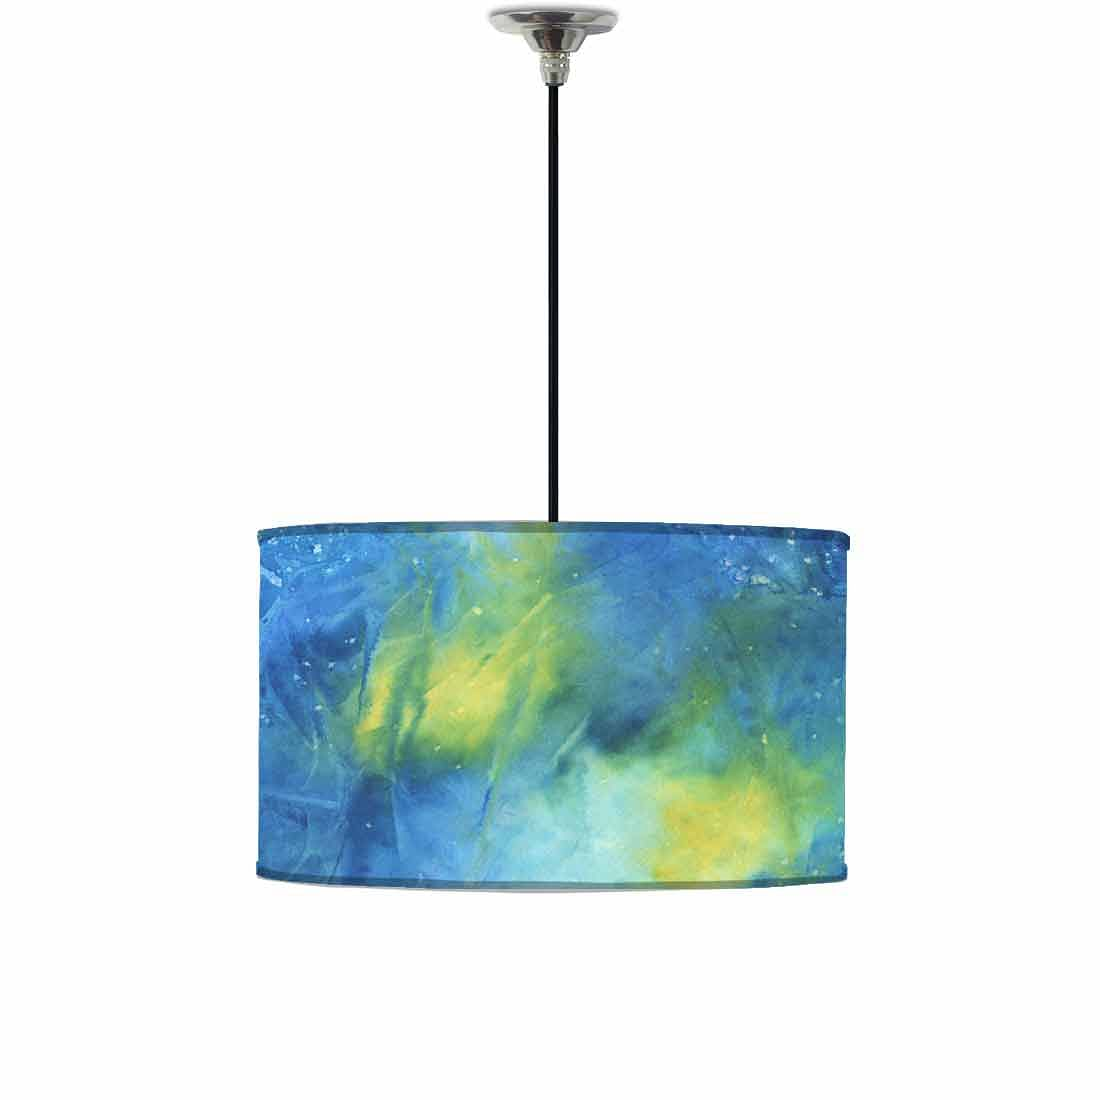 Ceiling Lamp Hanging Drum Lampshade - Arctic Space Dark Blue Green Watercolor